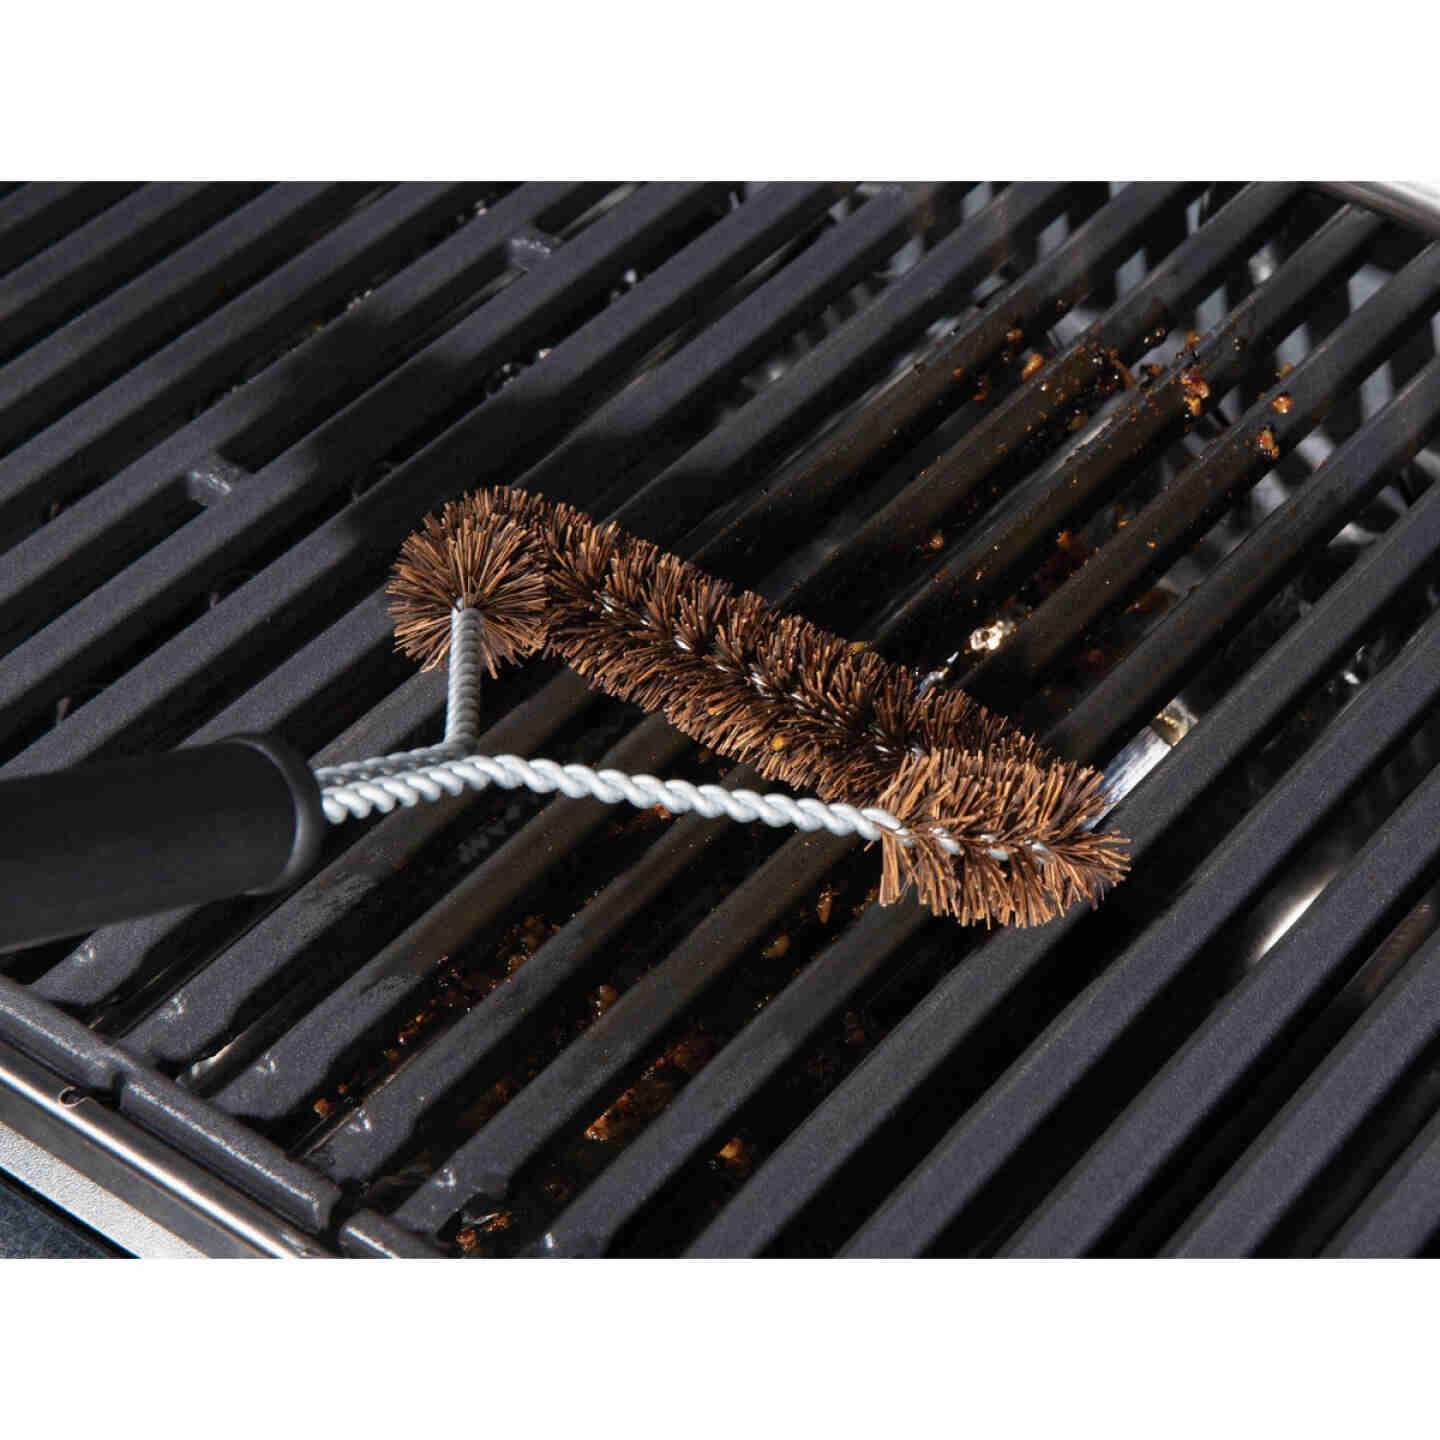 Grillpro 18 In. Extra Wide Palmyra Grill Brush Image 2